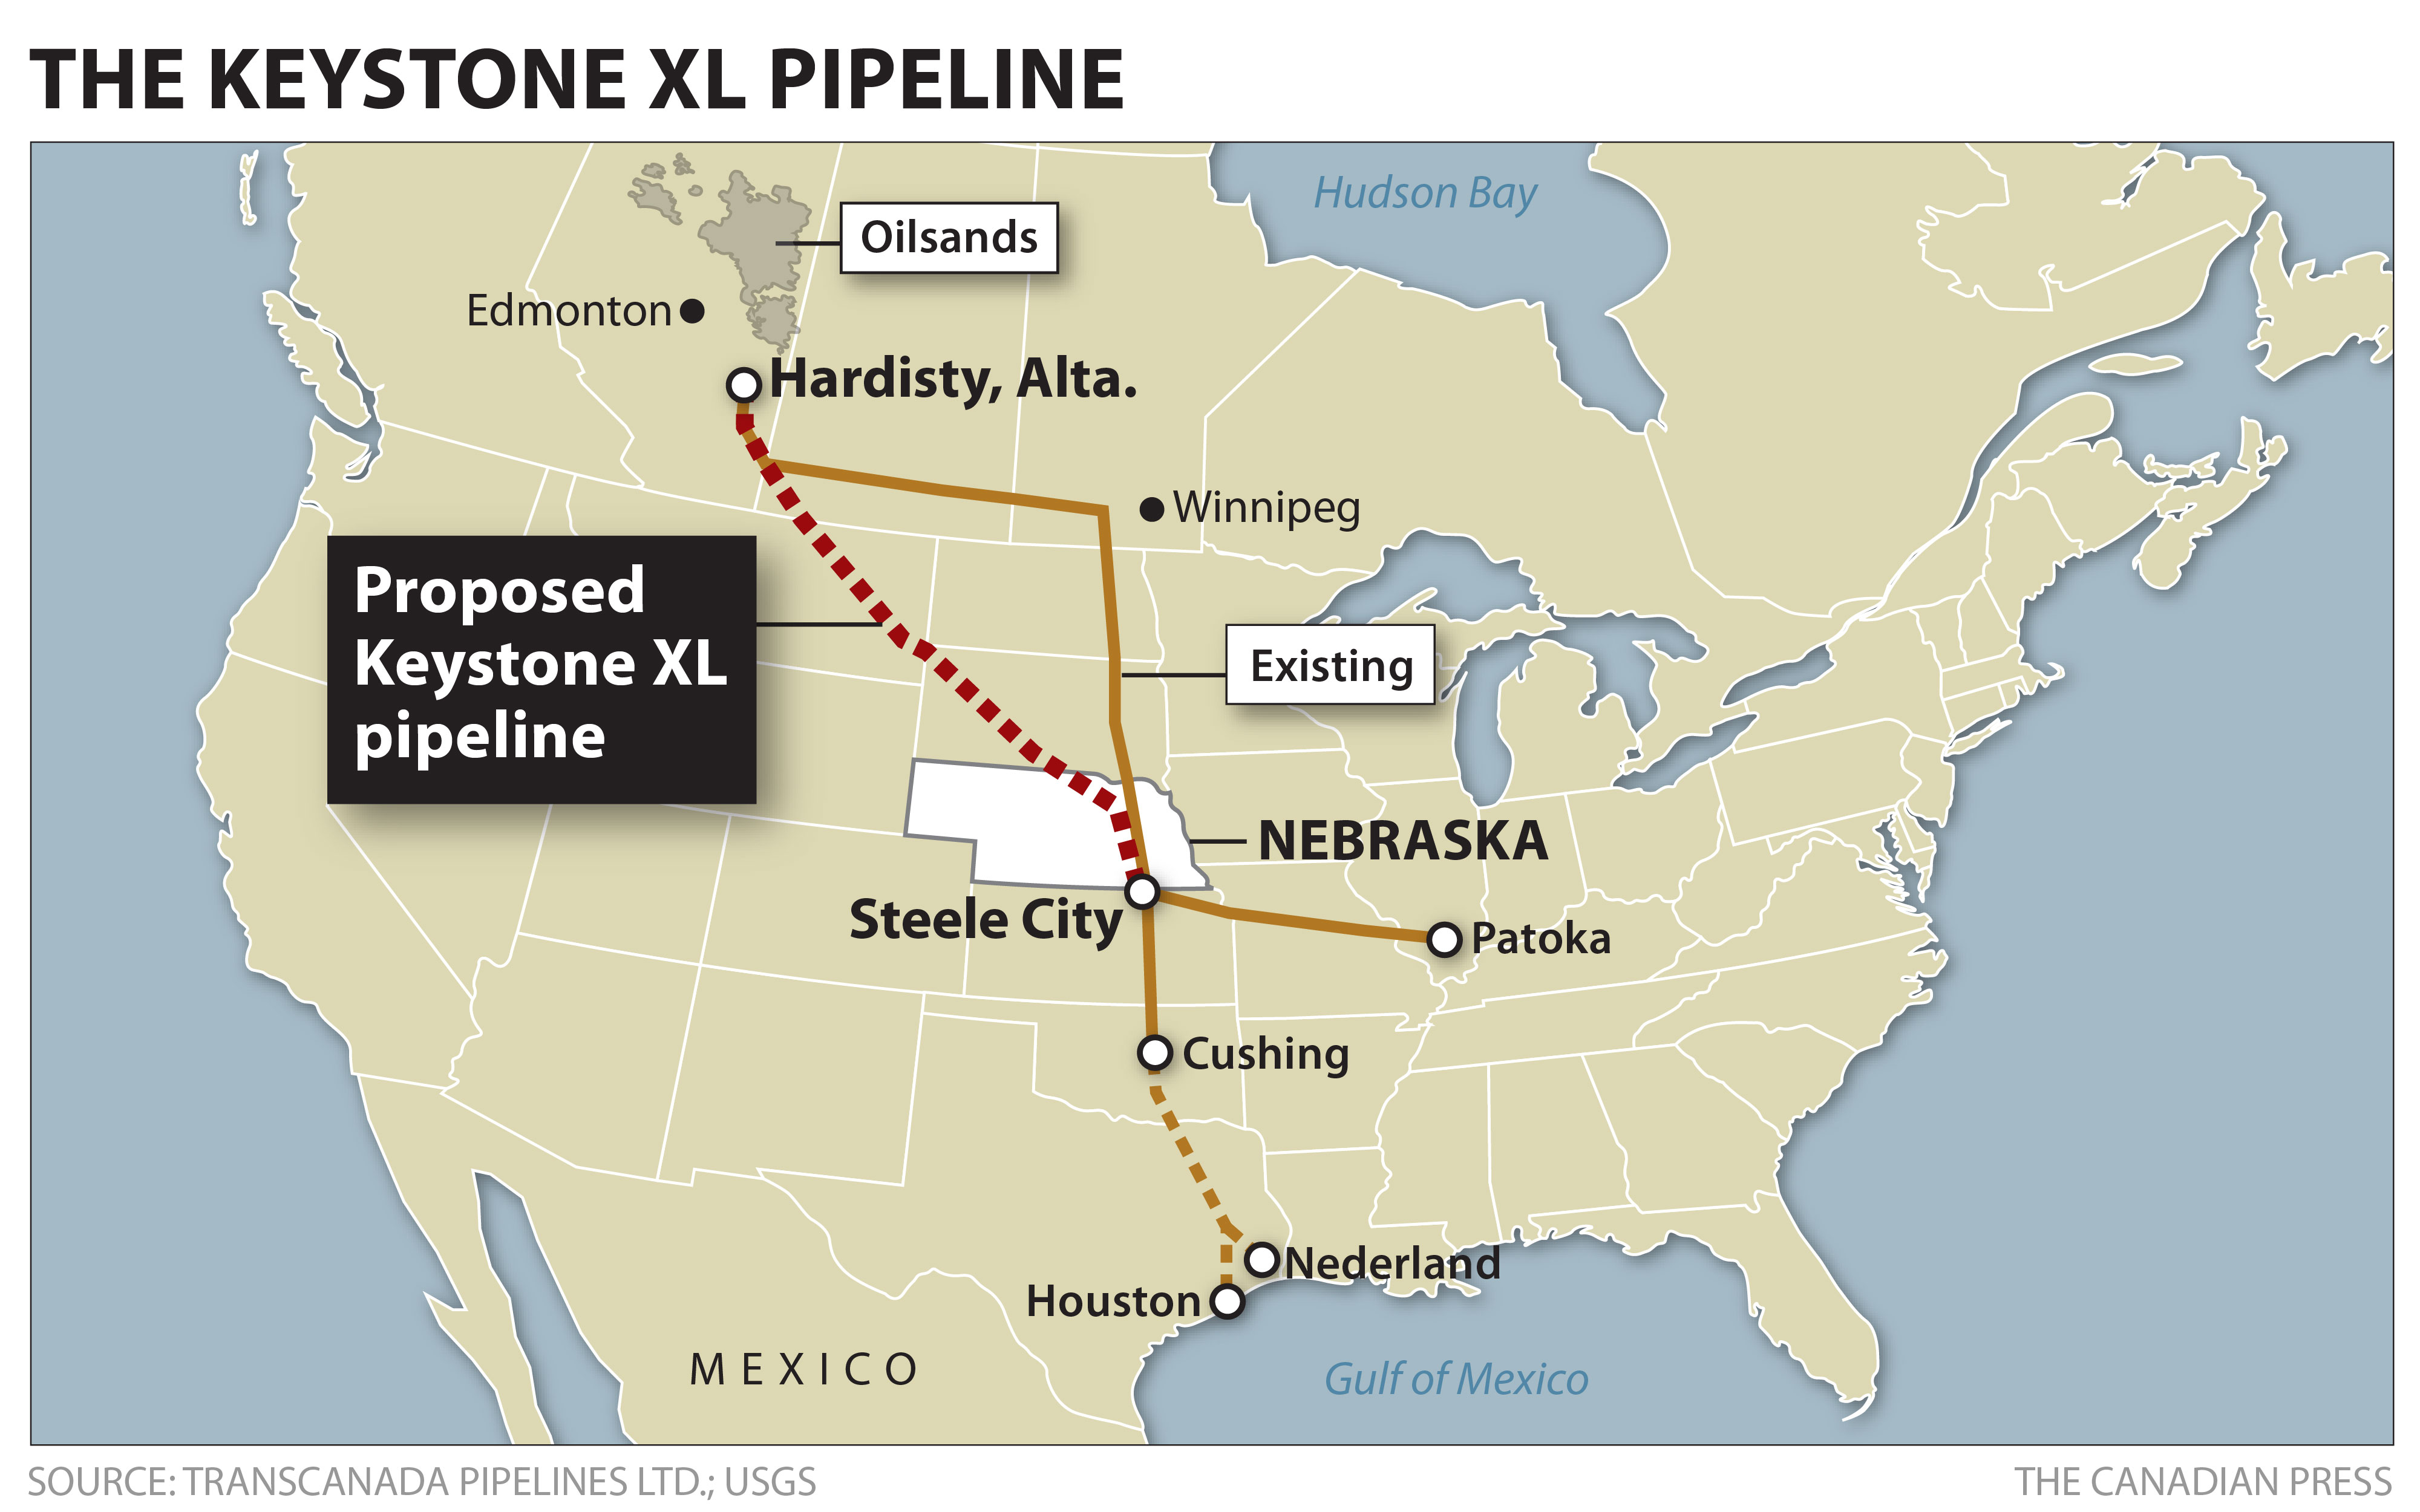 keystone xl pipeline essay Free essay: to build or not to build the keystone xl pipeline project has many pros and cons just as any project does, but this project has way bigger cons.